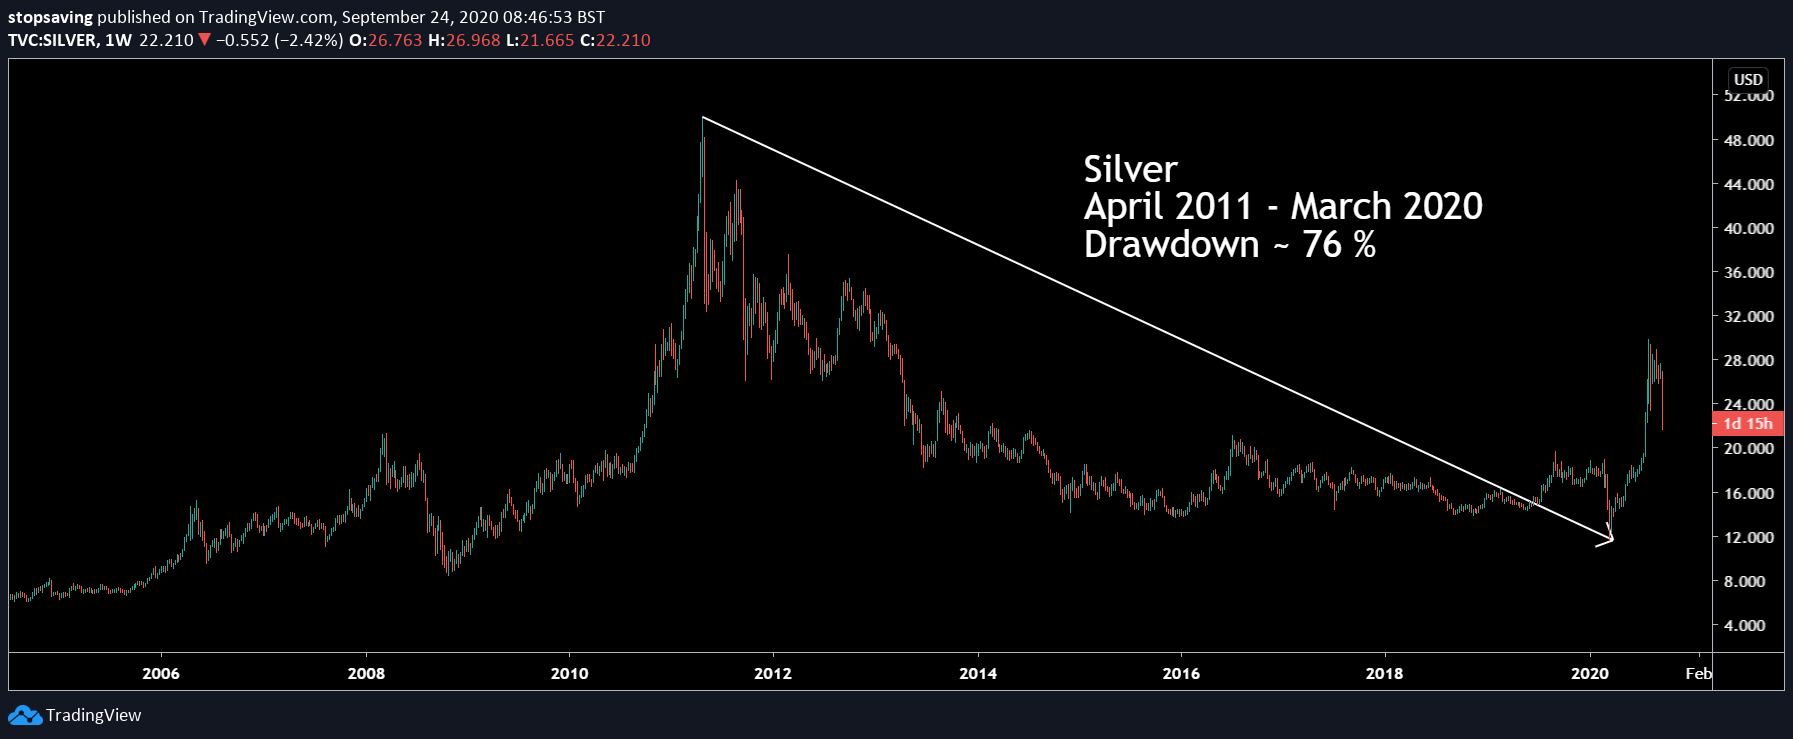 Chart showing the drawdown of silver